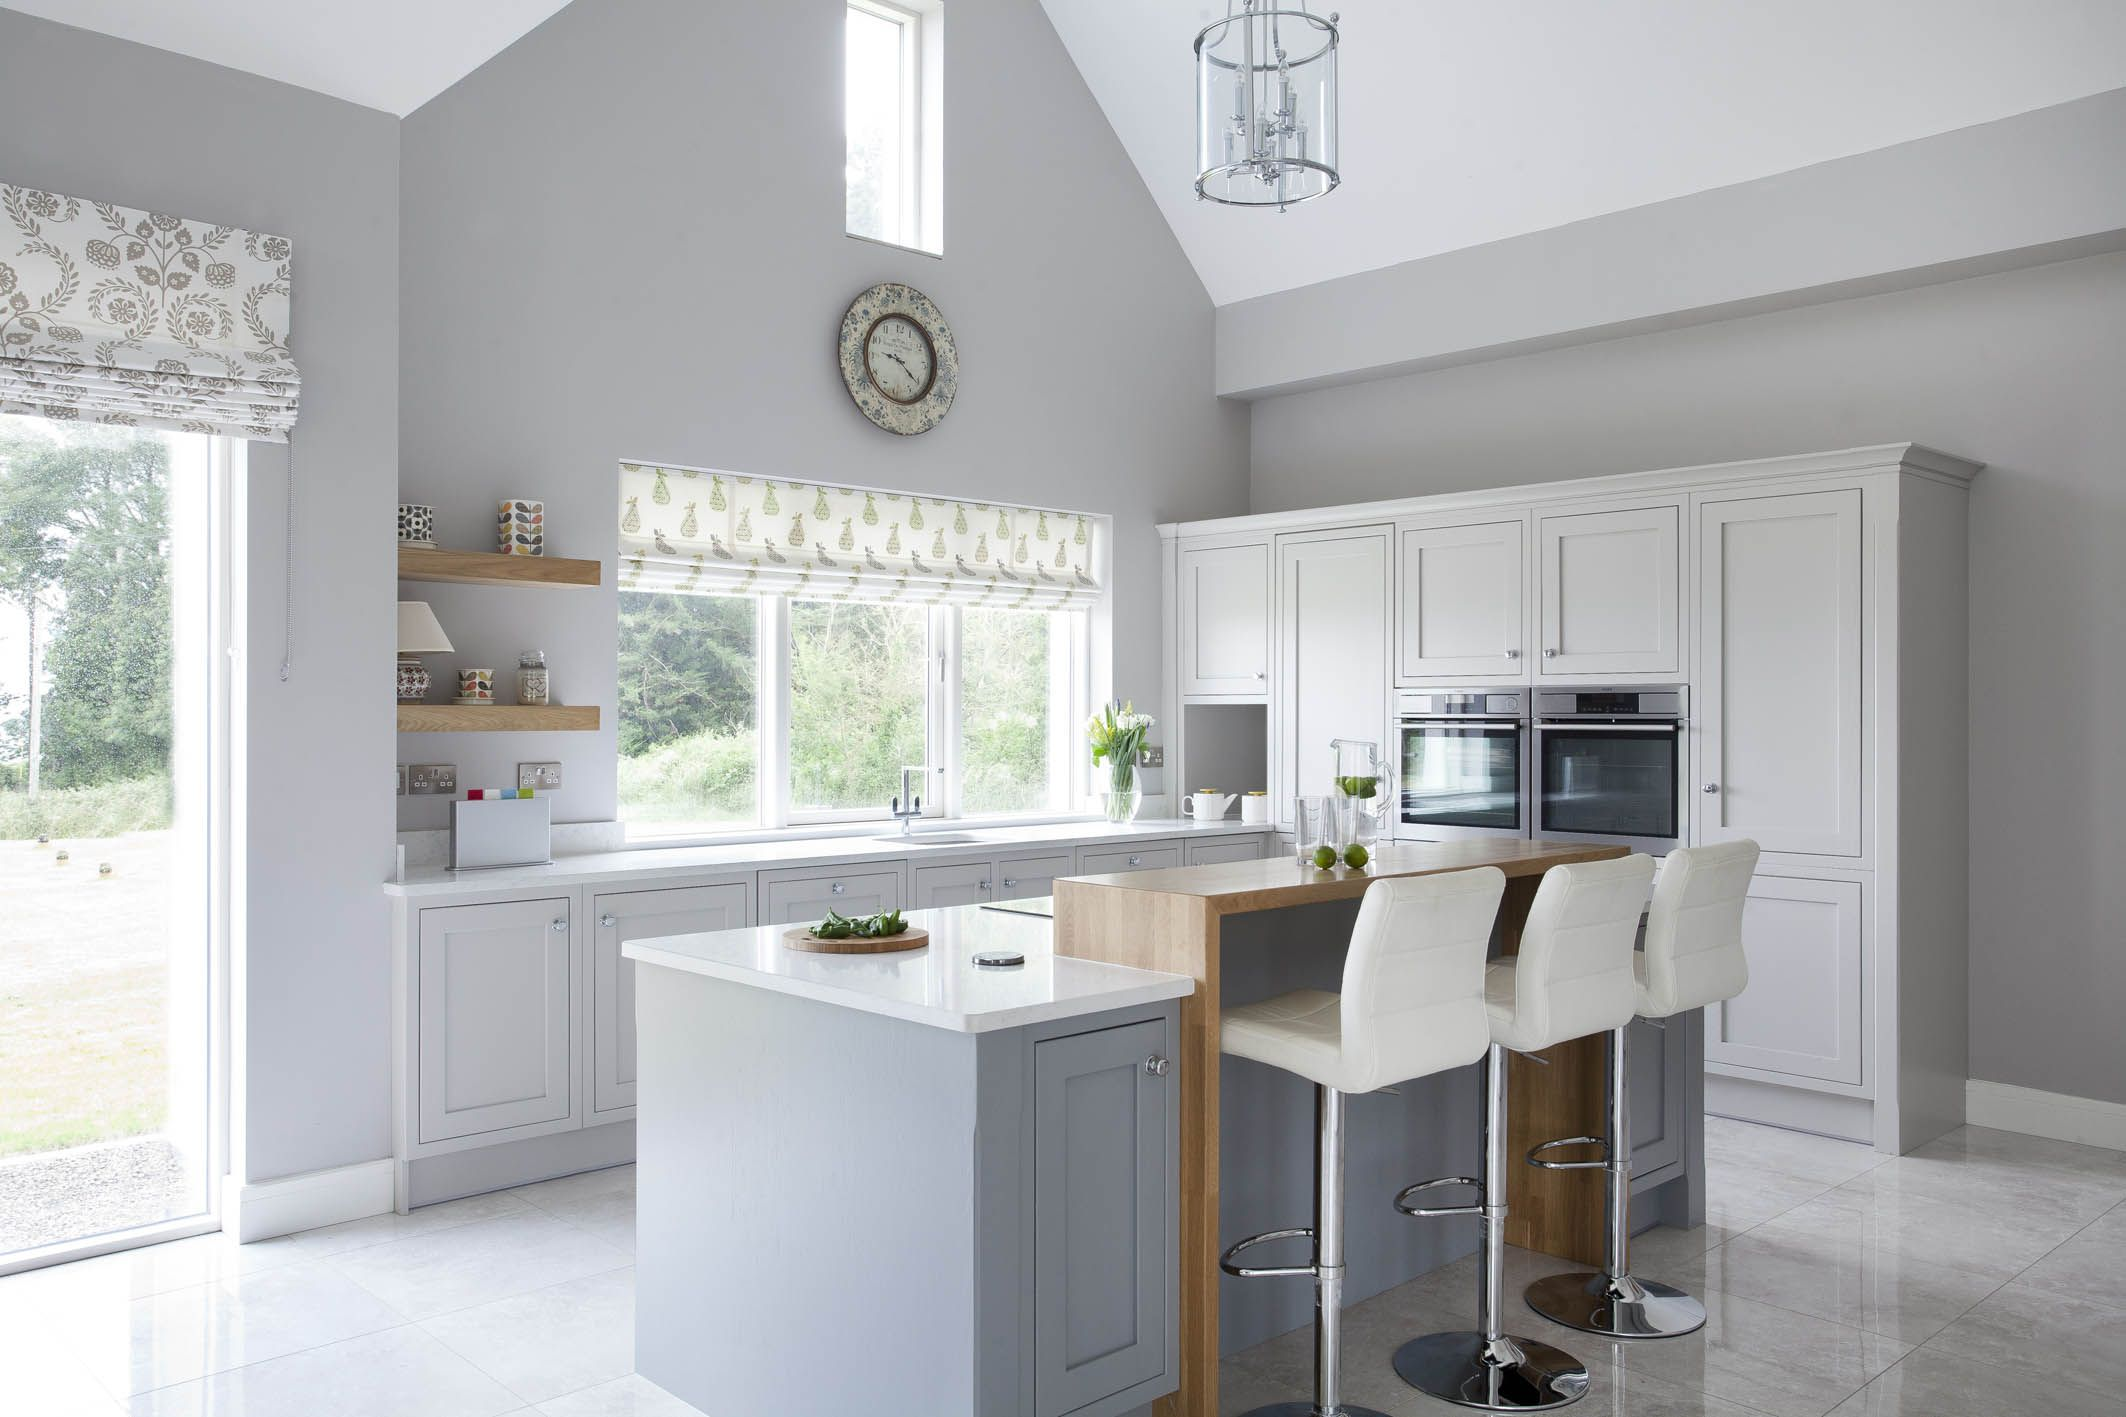 Best Bespoke Kitchen – Handpainted In Farrow Ball Cornforth 400 x 300